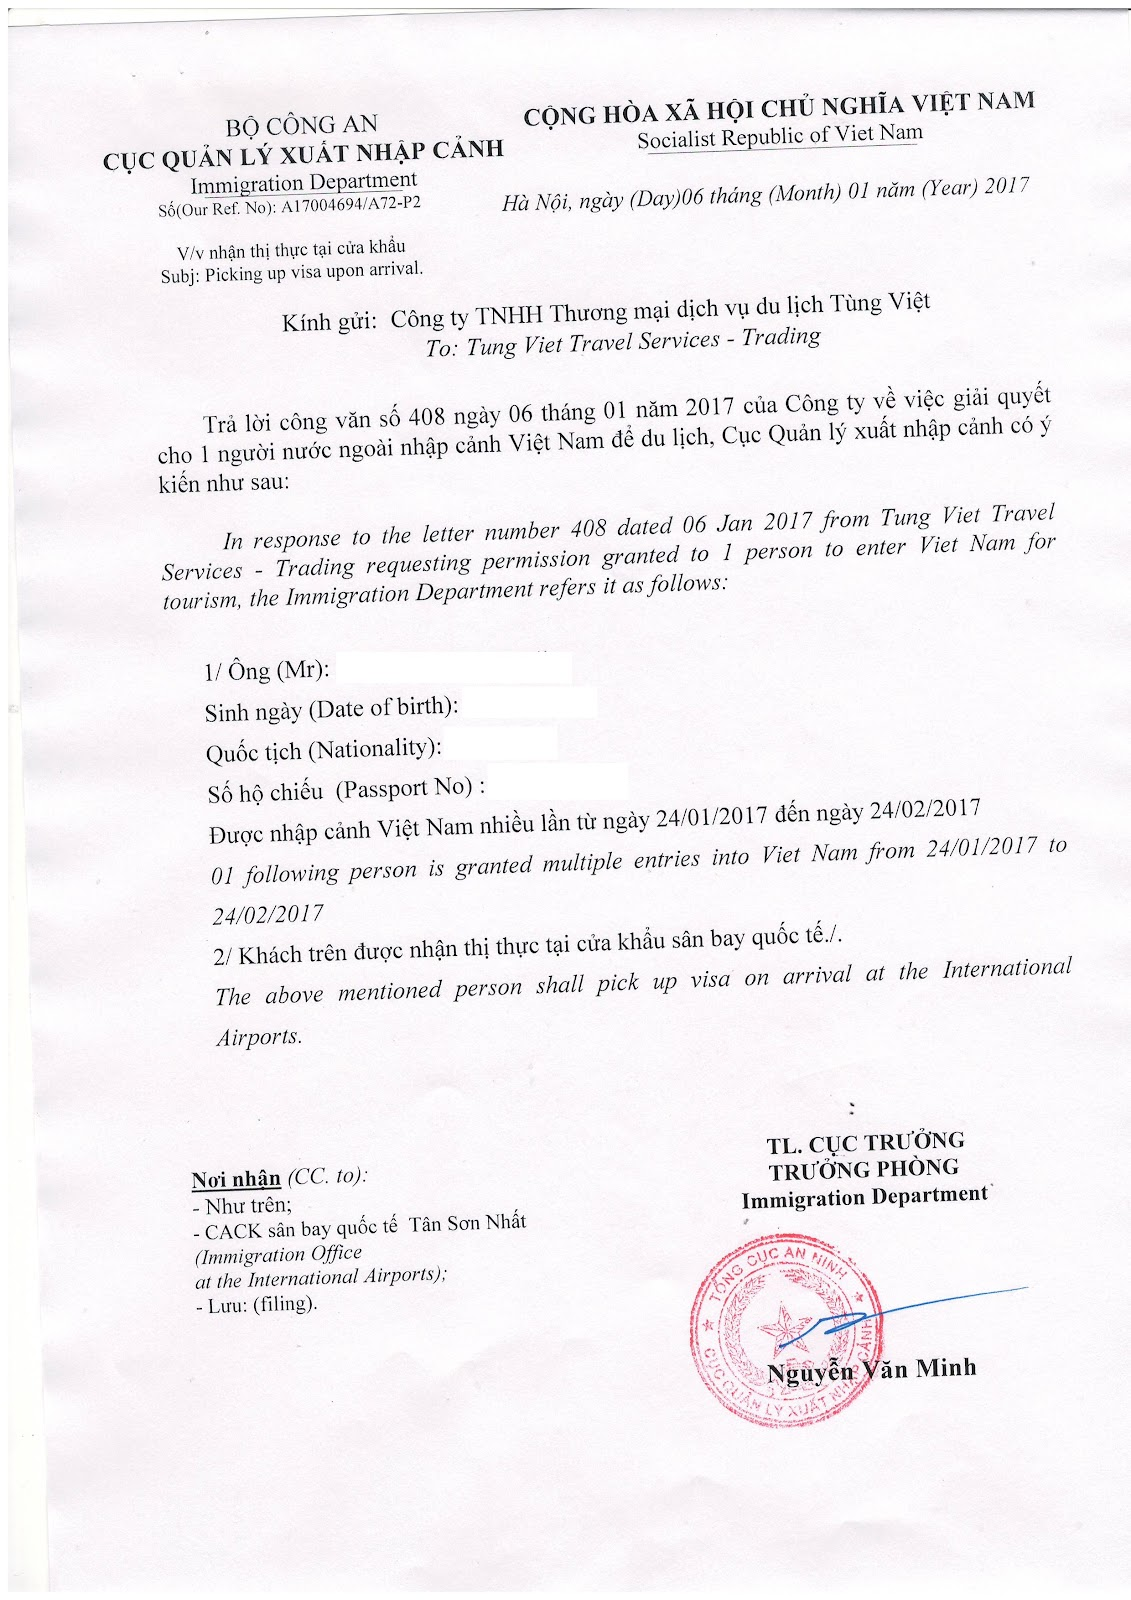 visa approval letter for entry by air.JPG